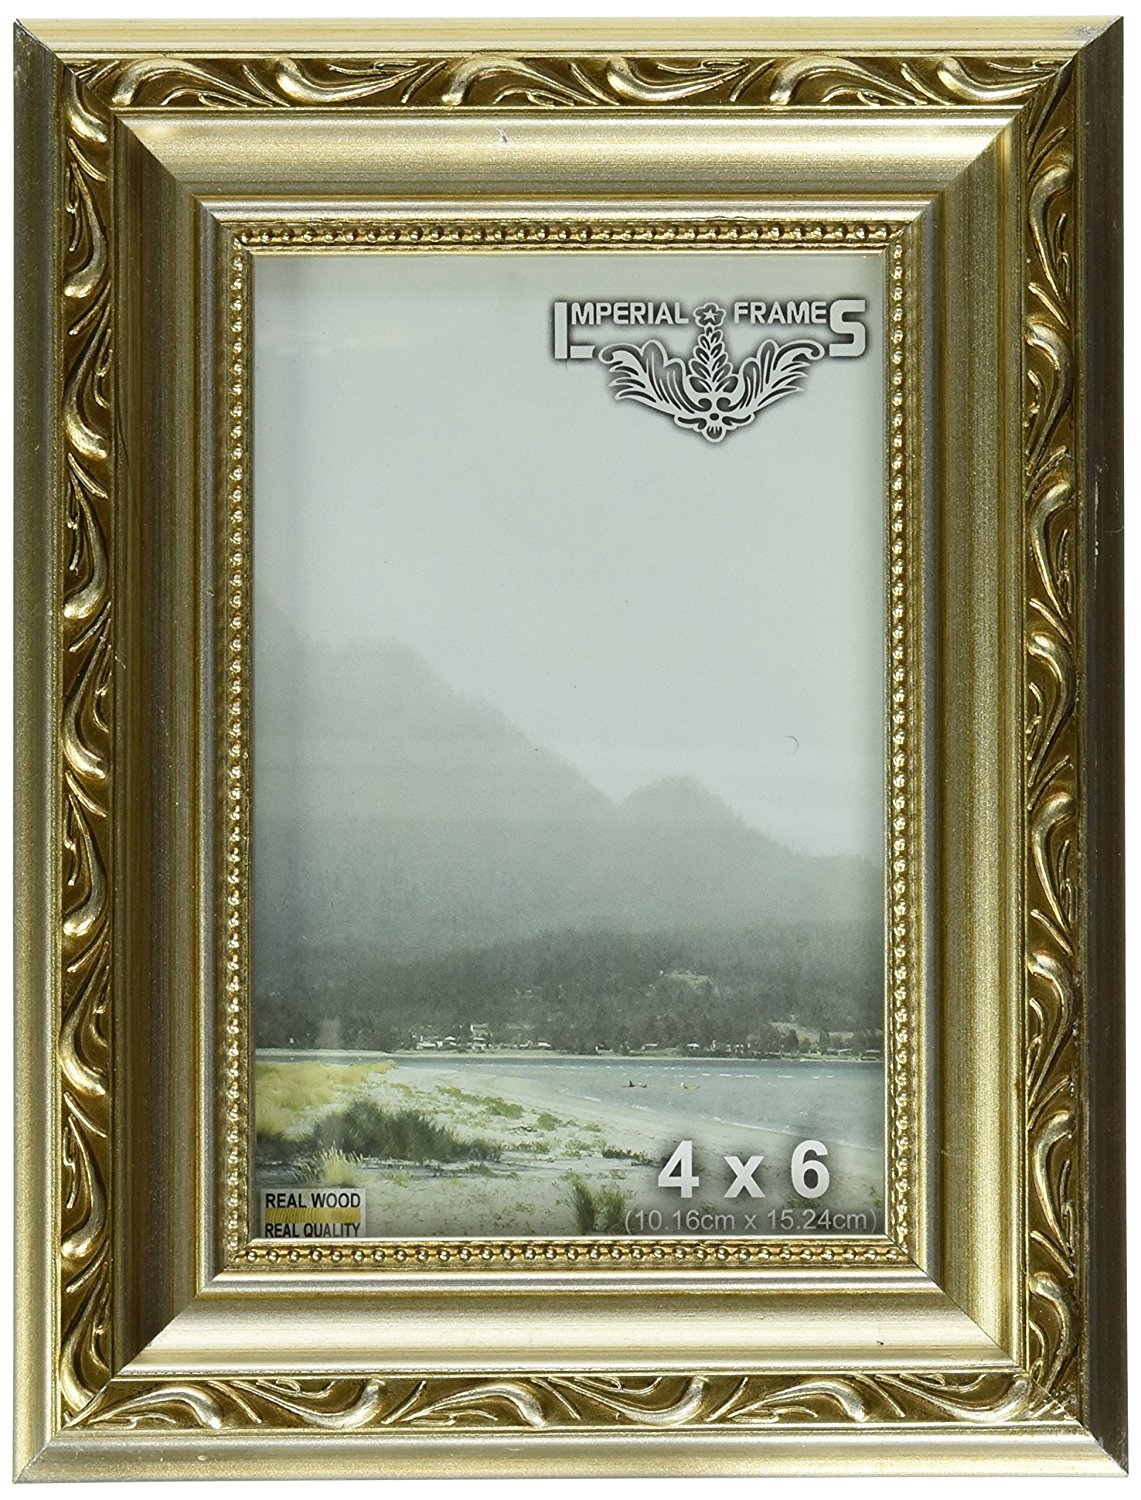 Buy Imperial Frames 10 By 13 Inch13 By 10 Inch Picturephoto Frame